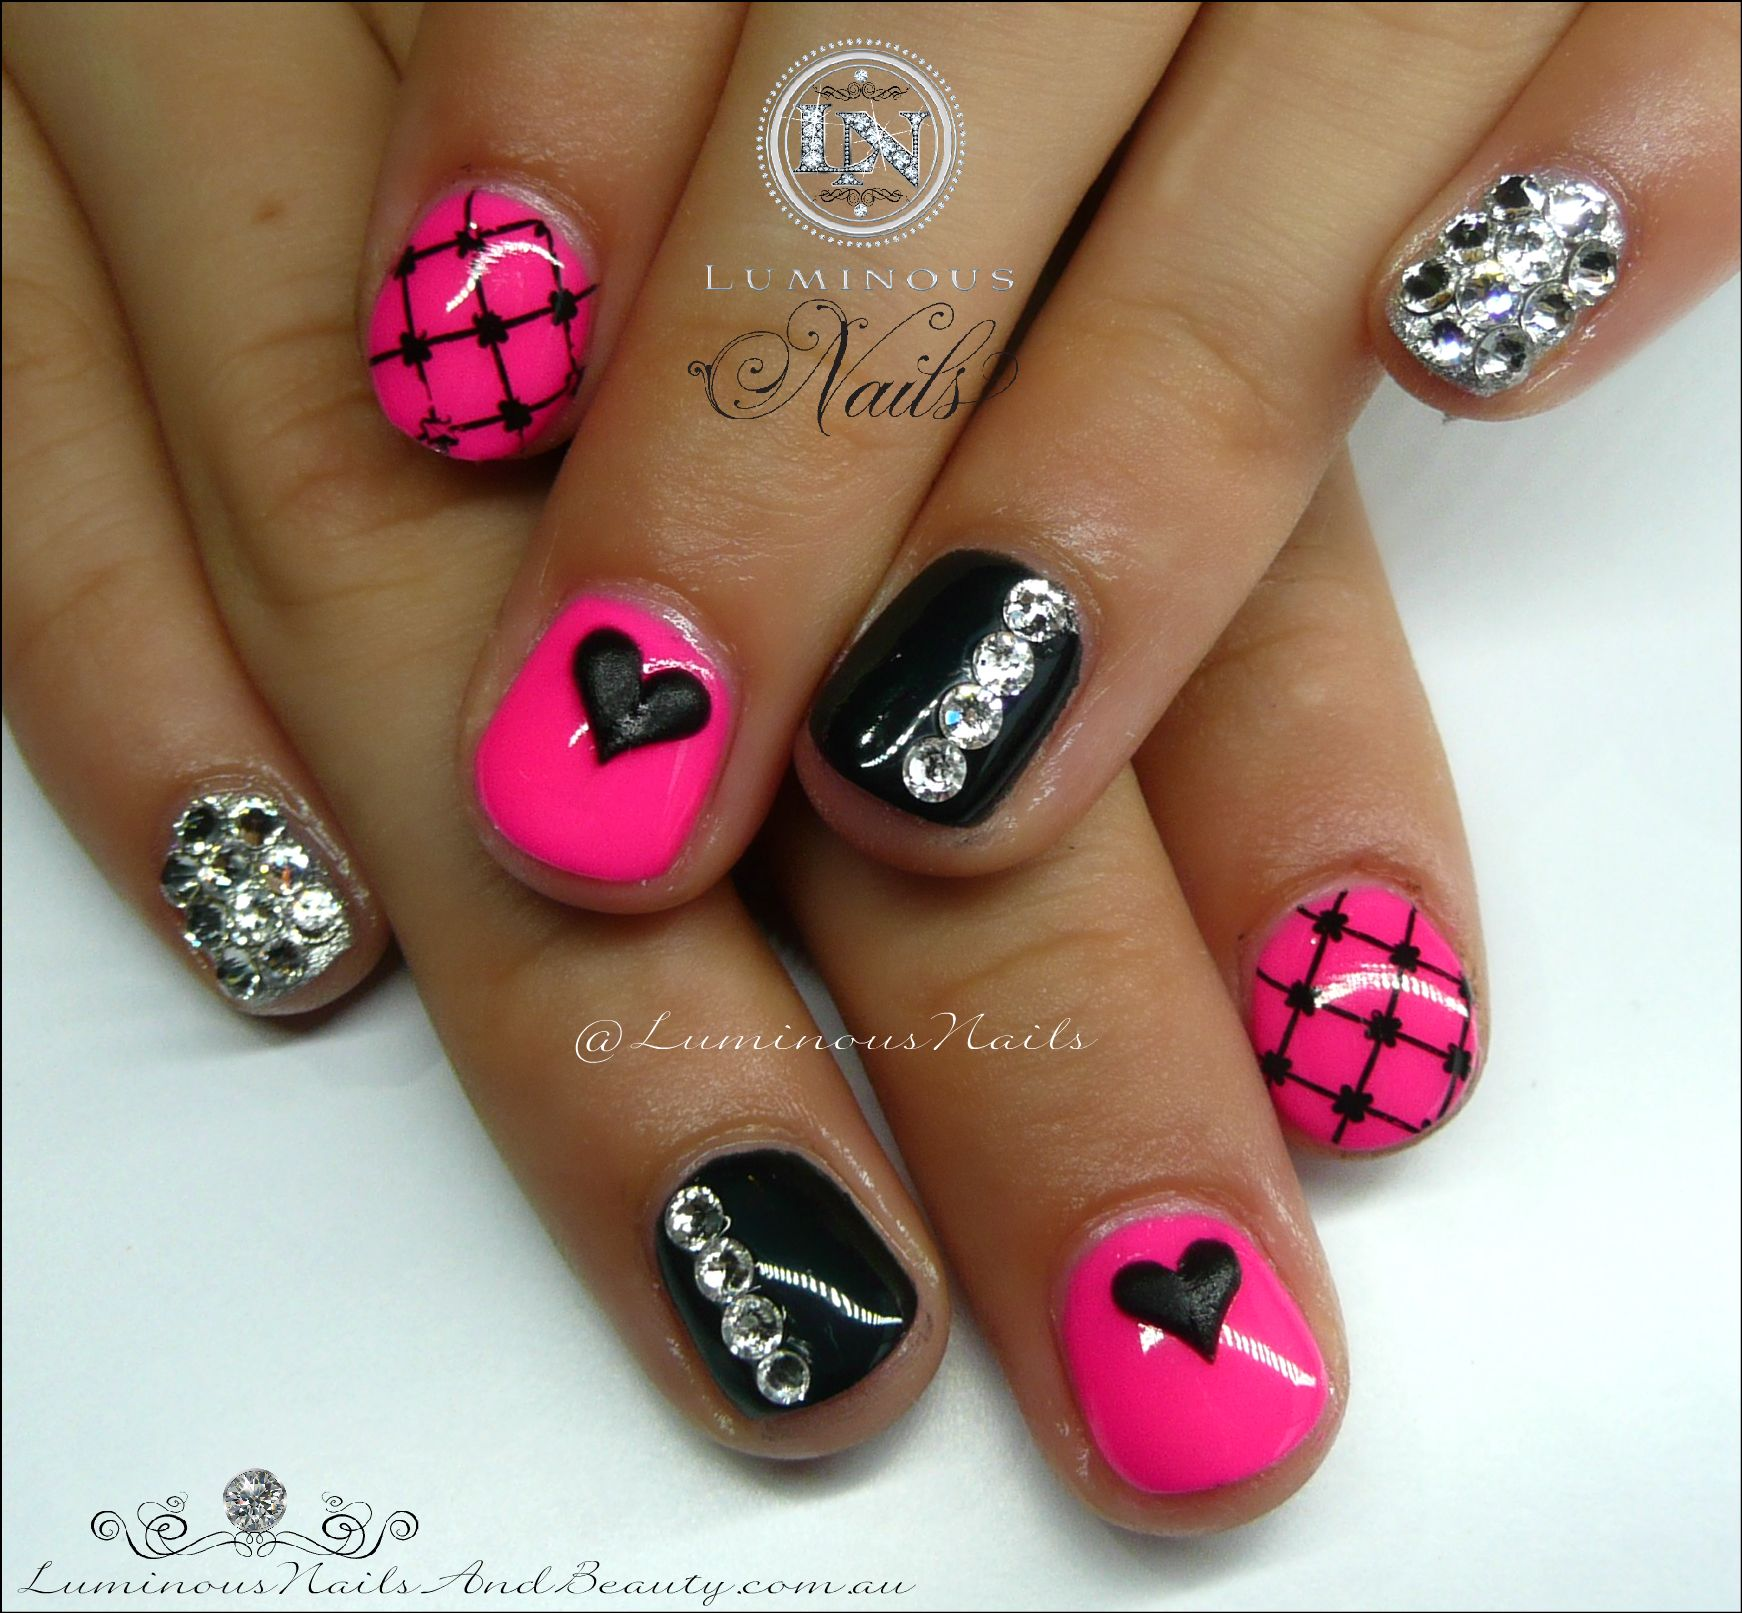 Cute Pink & Black Gel Nails for a Cute Little Girl ...